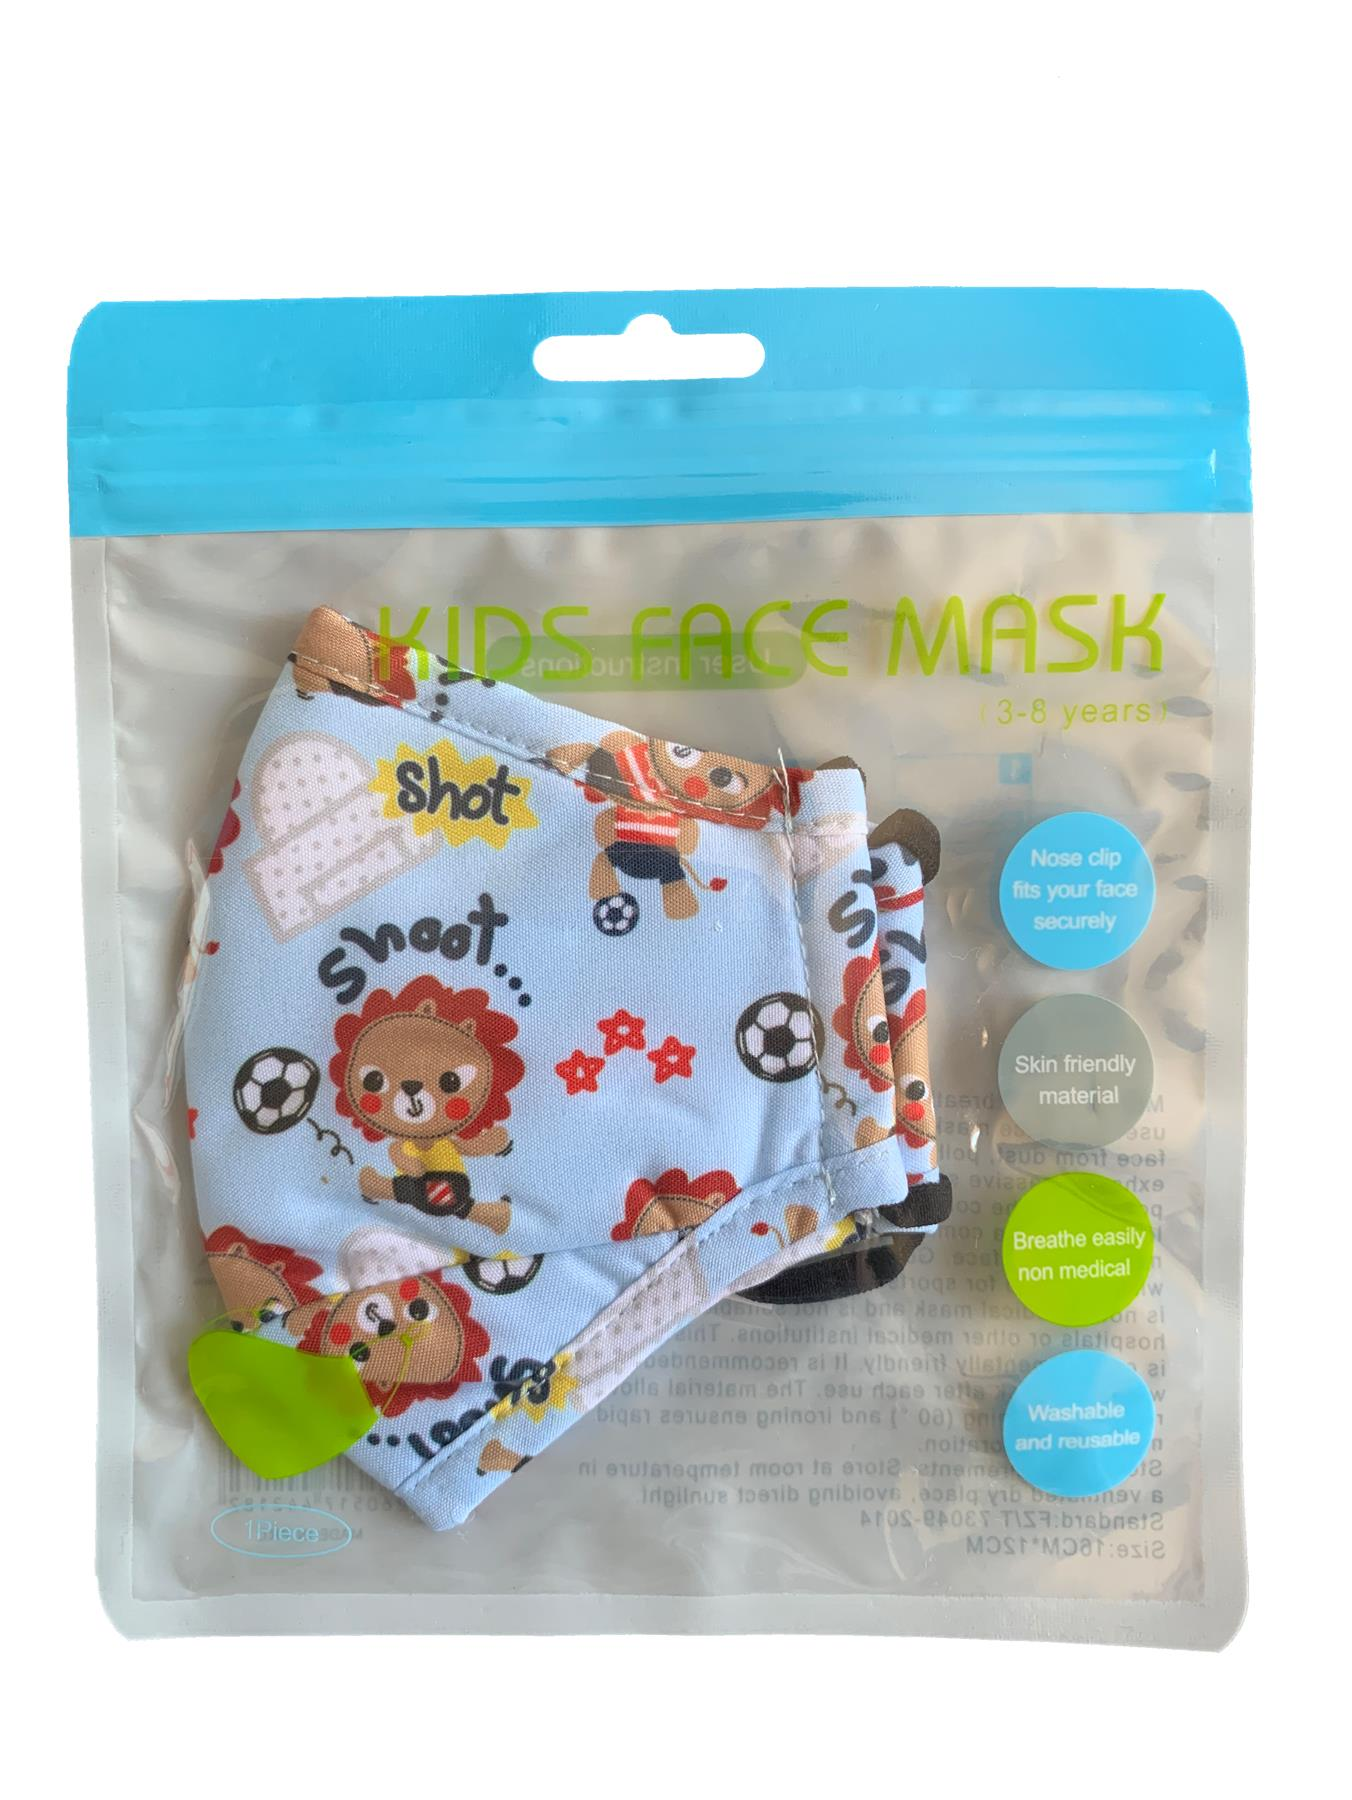 KIDS-FACE-MASK-ULTRA-SOFT-BREATHABLE-amp-WASHABLE-IRISH-2-DAY-DELIVERY-6-STYLES thumbnail 20